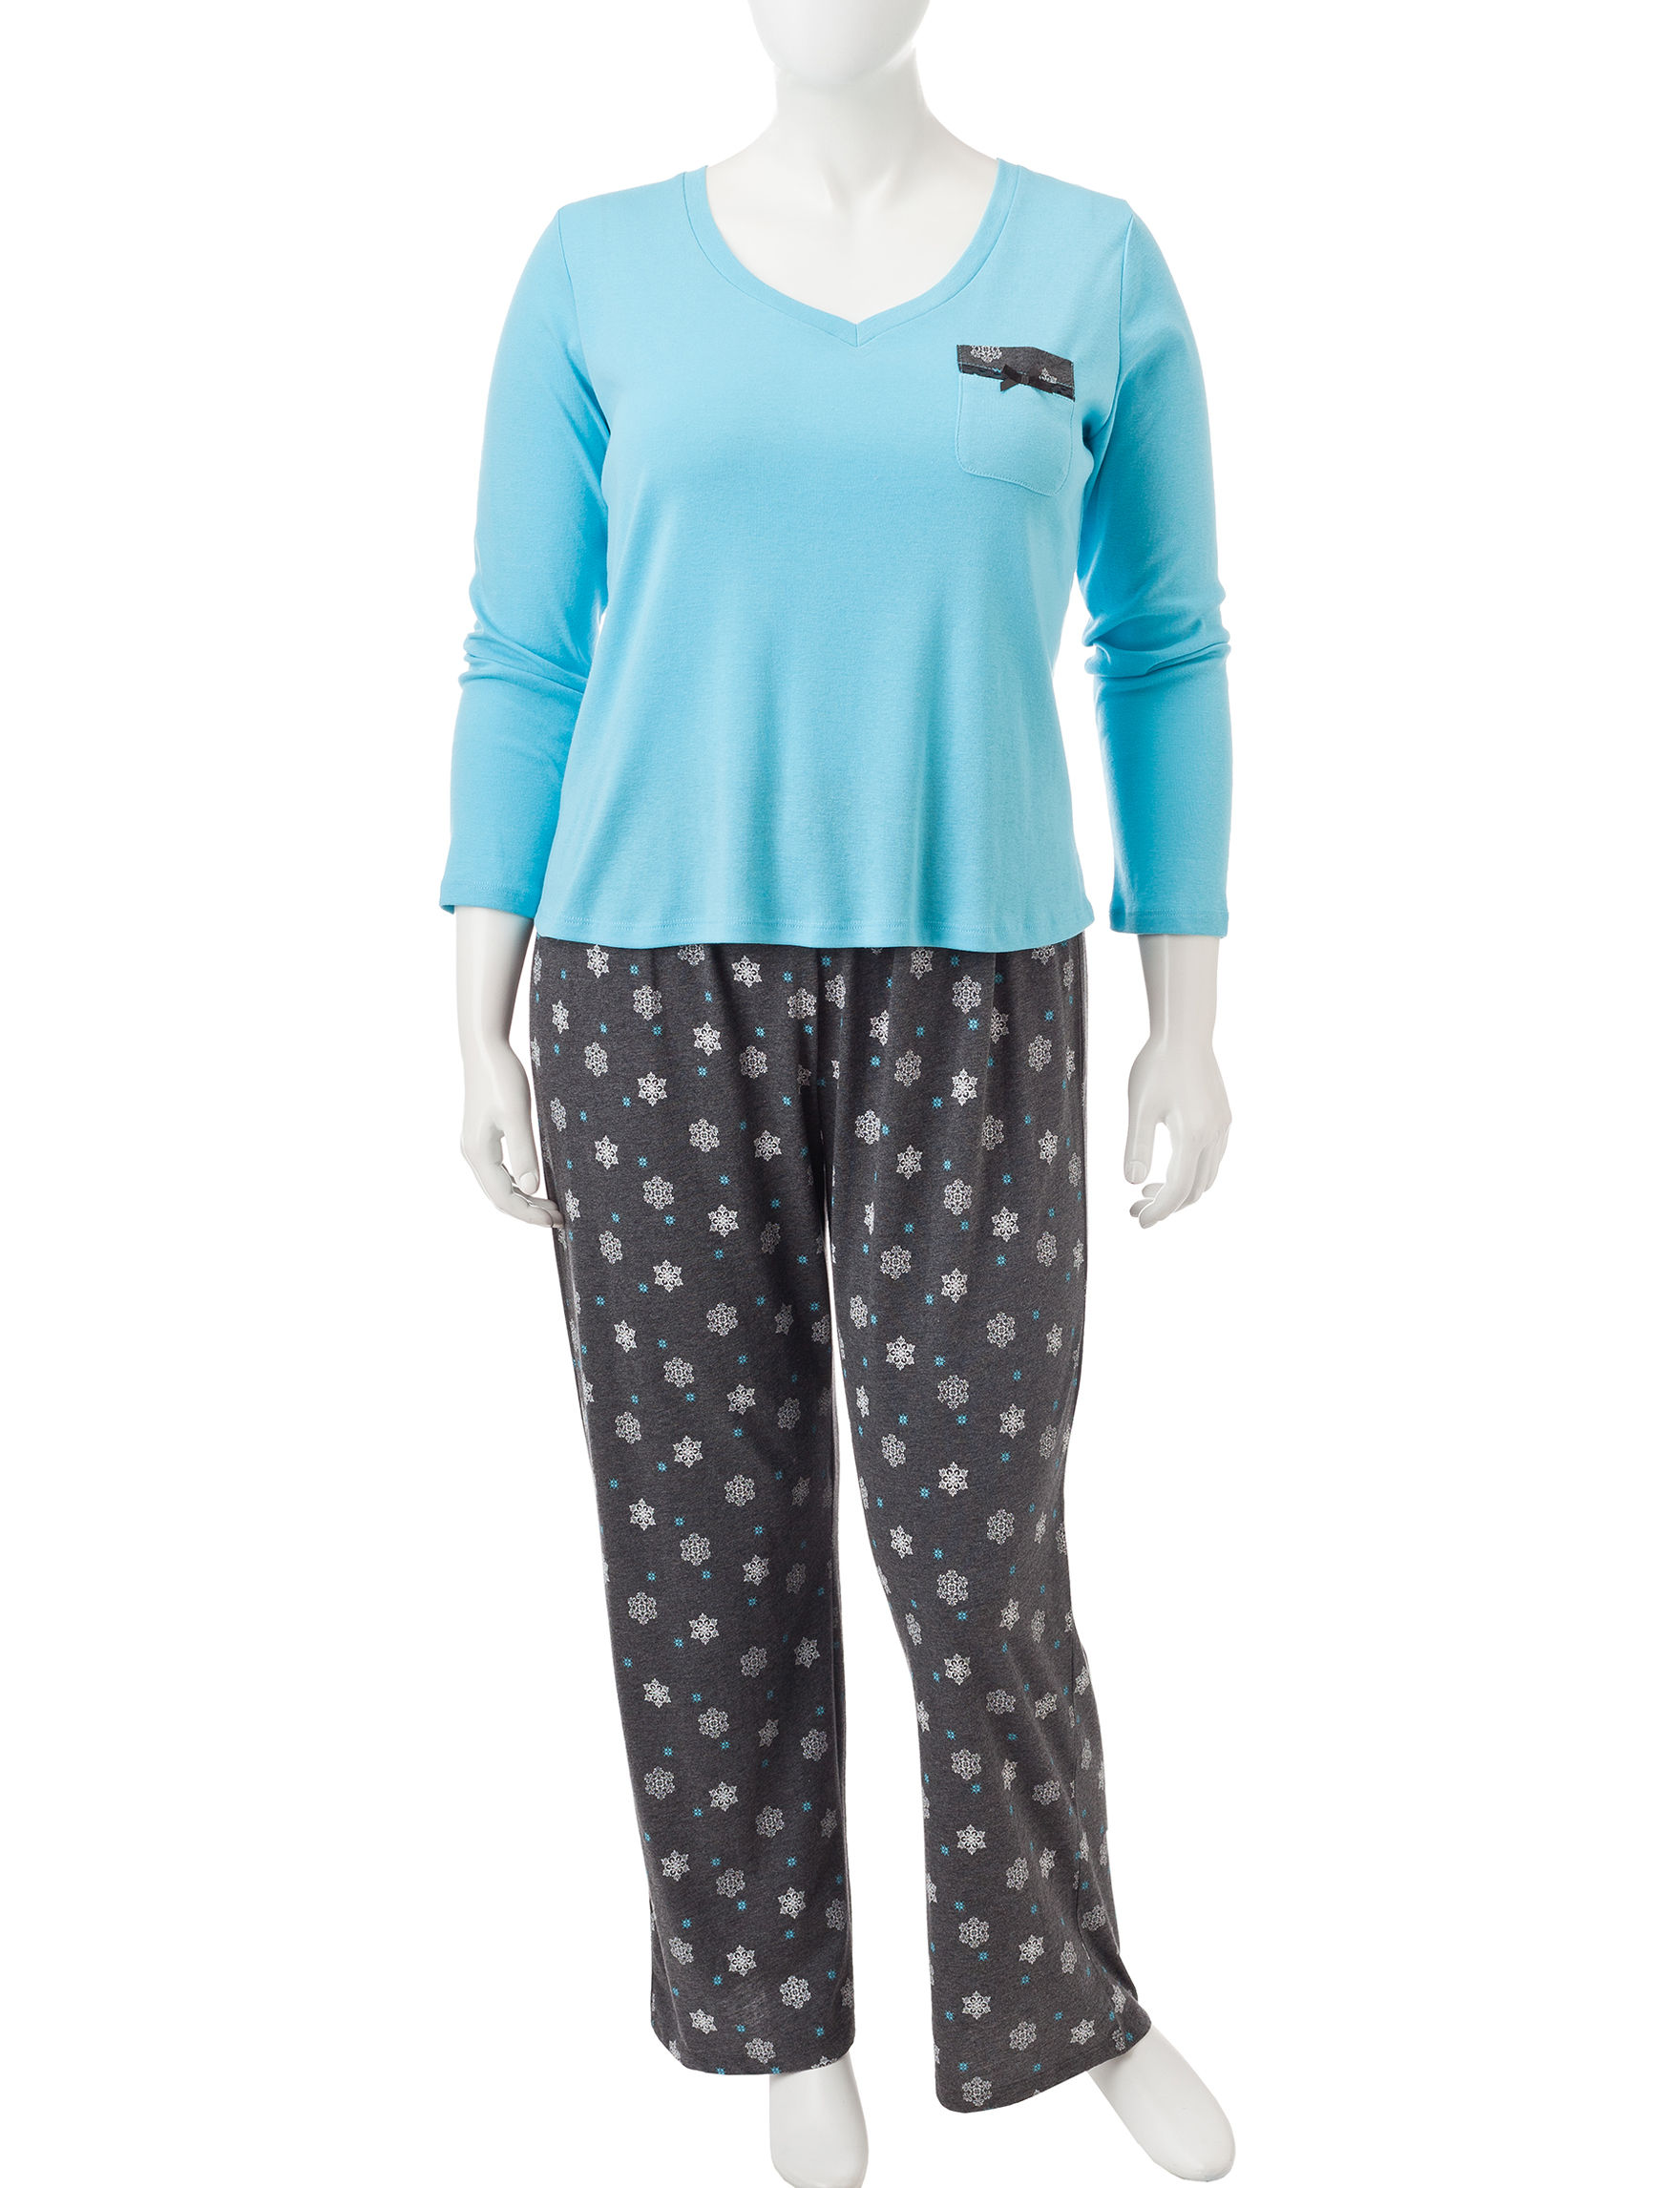 Laura Ashley Blue Pajama Sets